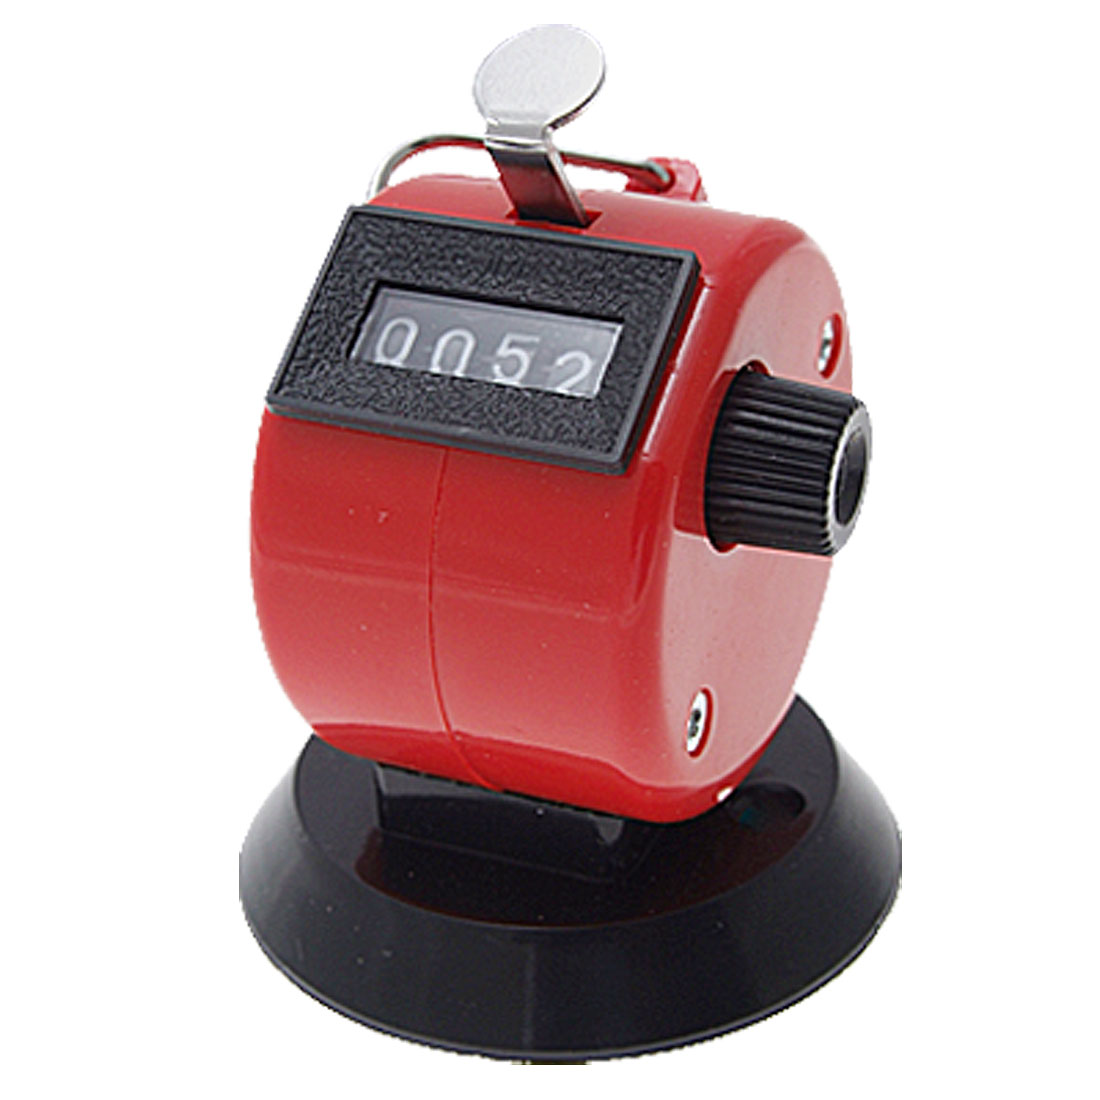 Red Plastic Hand Tally 4 Digit Number Clicker Counter